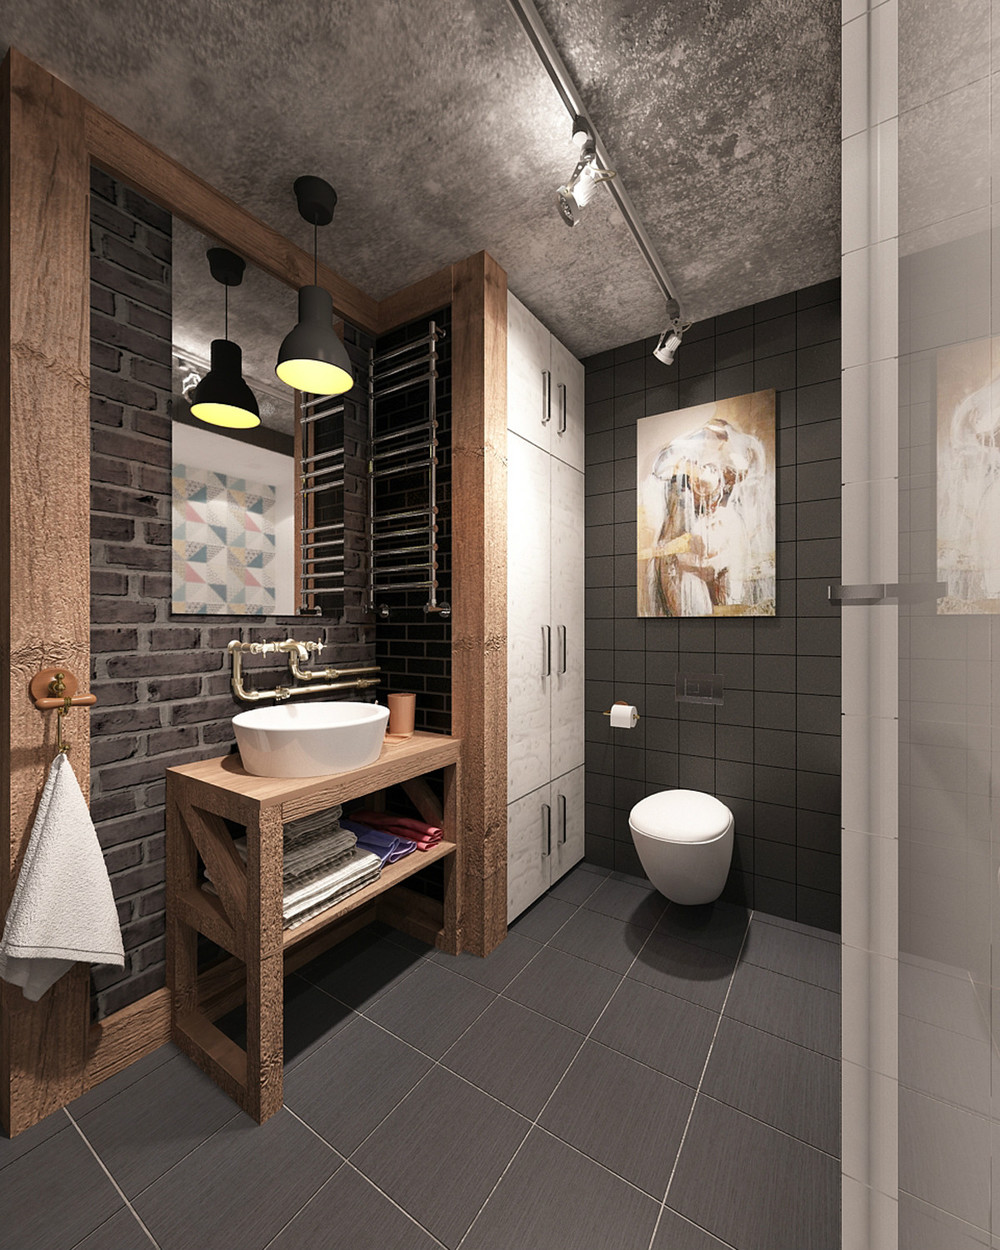 Apartment Bathroom Remodel Ideas: 4 Small & Beautiful Apartments Under 50 Square Meters